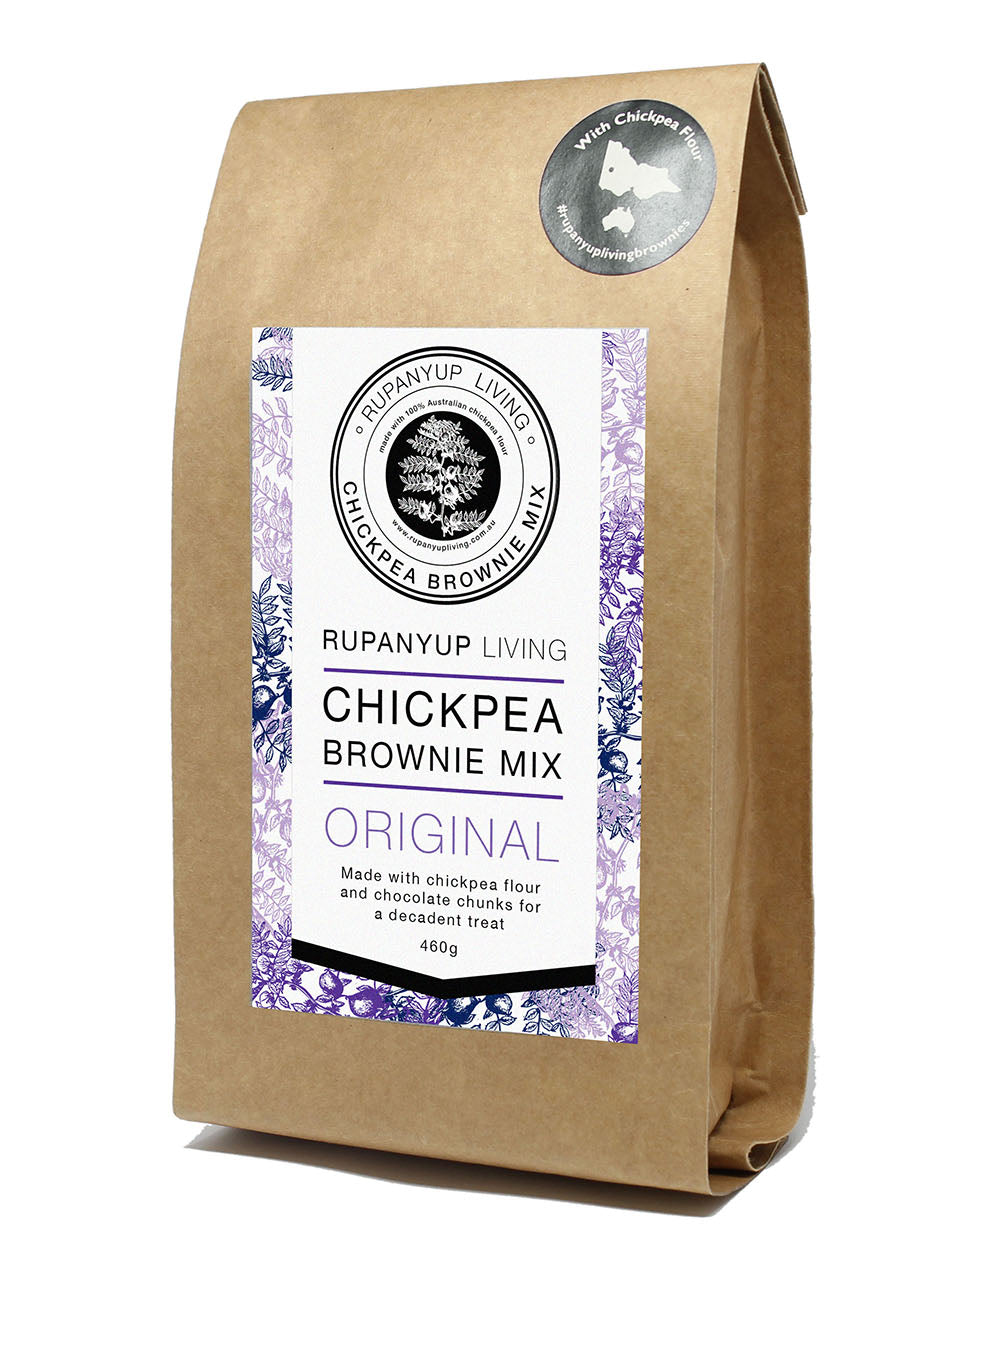 Chickpea Brownie Mix - Original